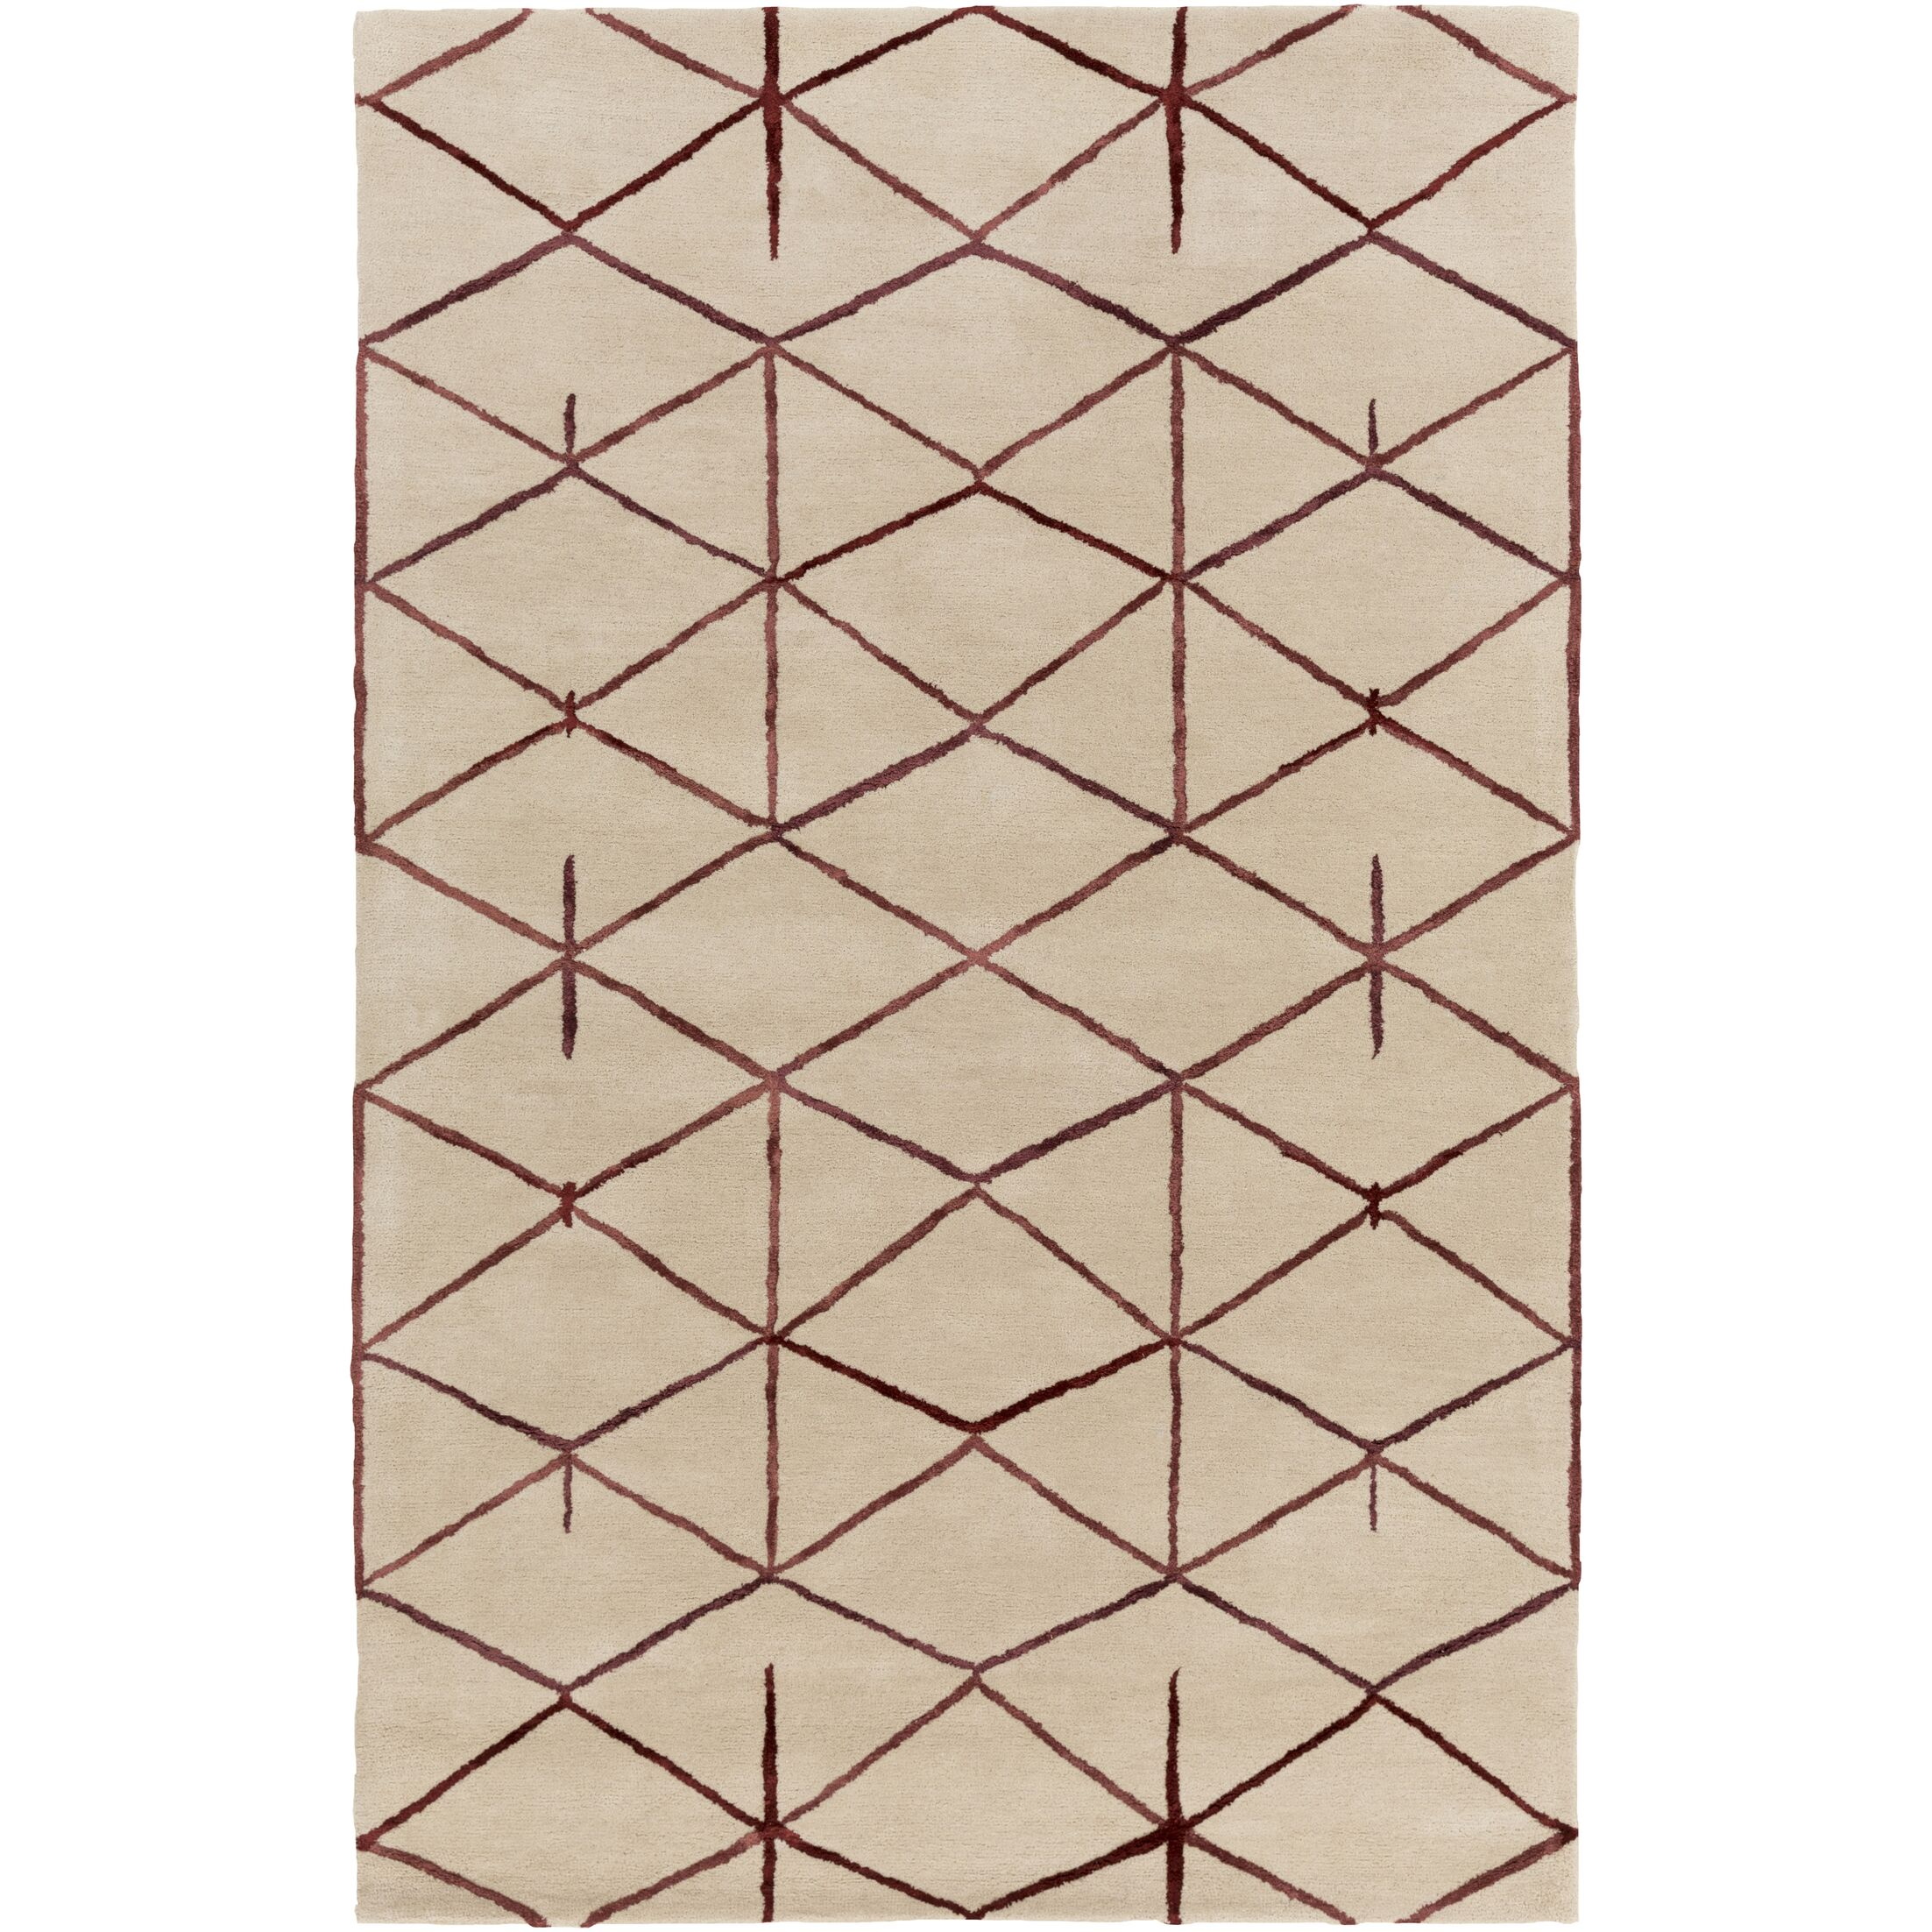 Romola Hand-Tufted Area Rug Rug Size: Runner 2'6